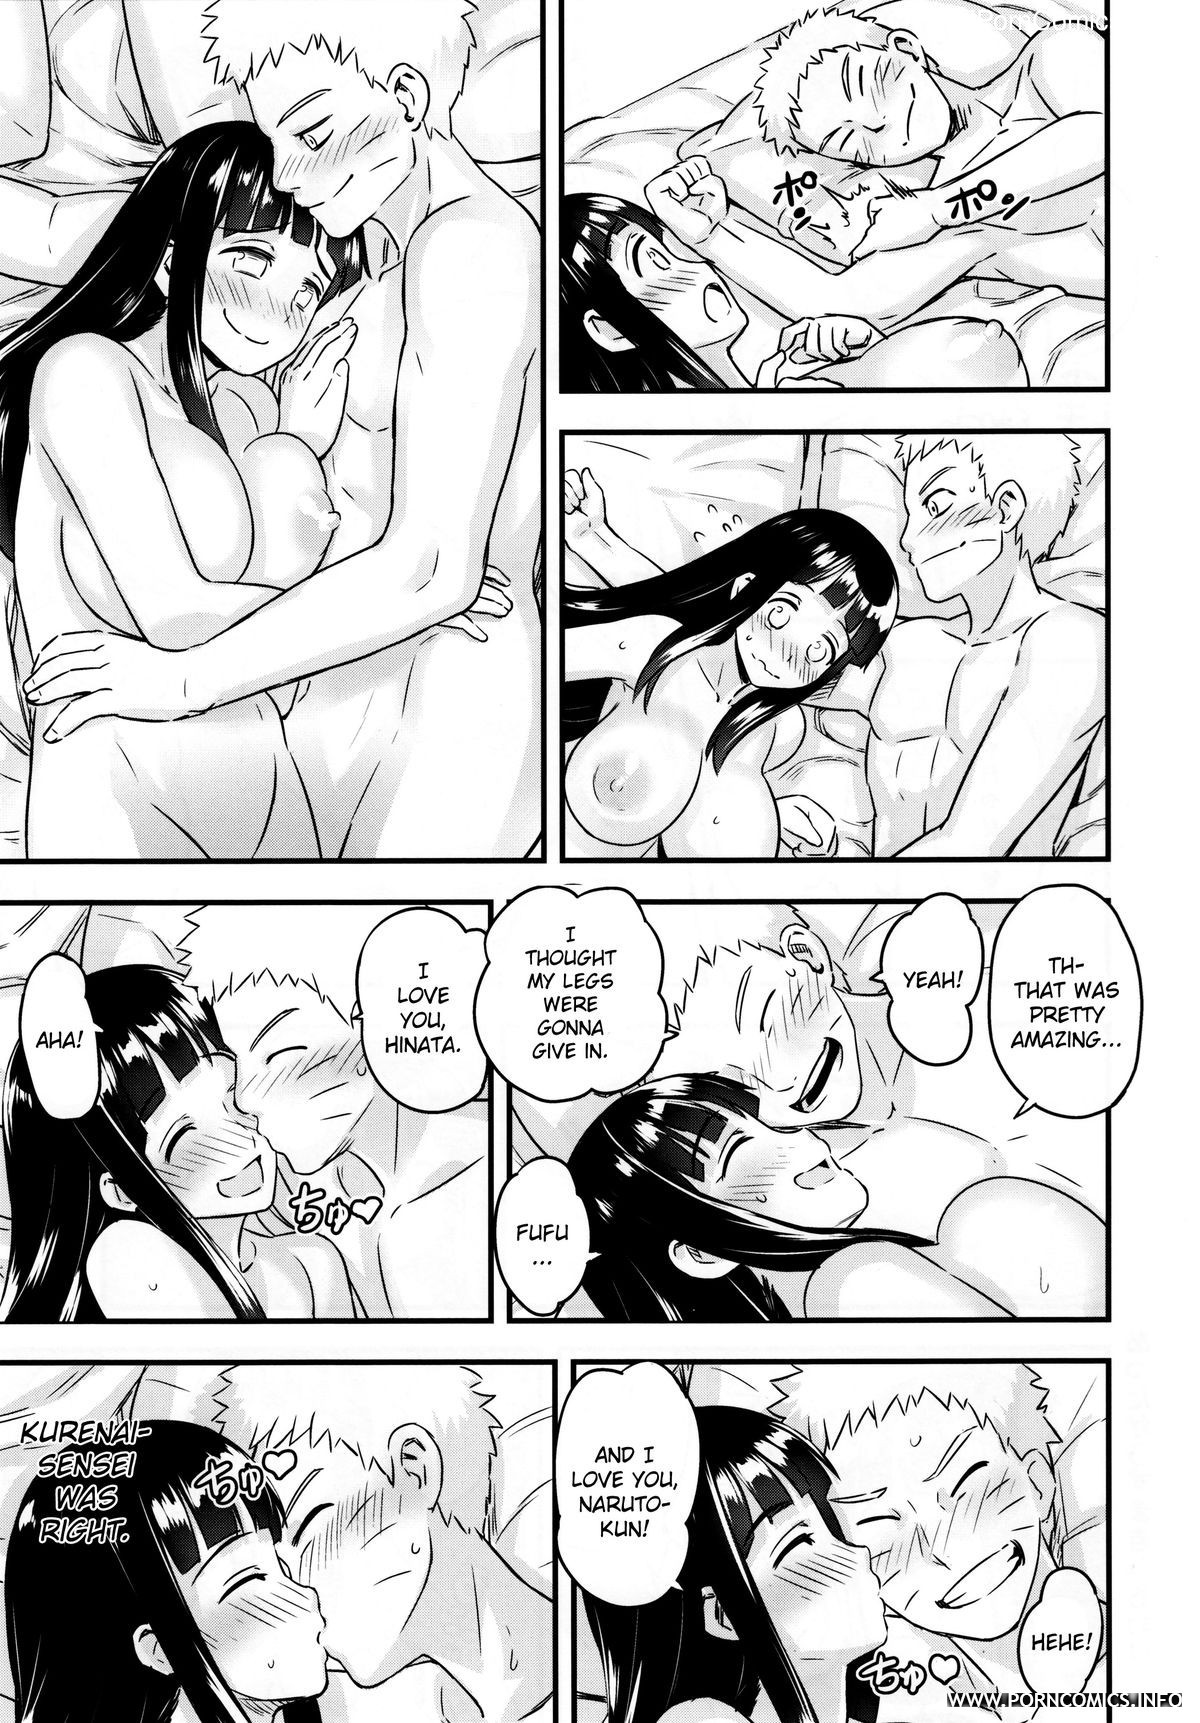 Attaka Uzumaki | Warm Whirlpool (Naruto)39 free sex comic